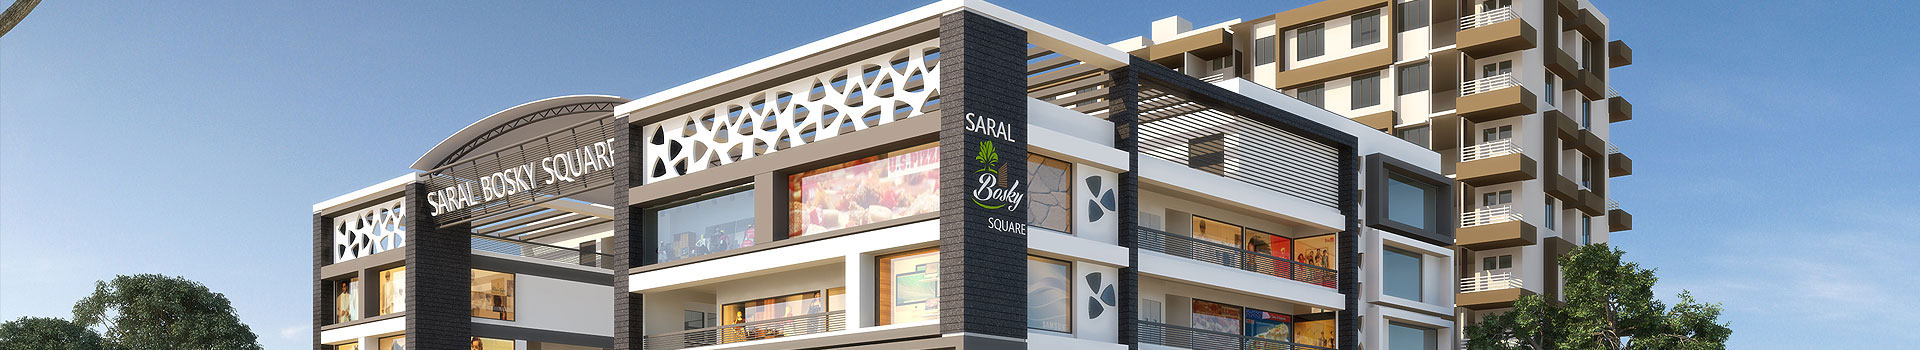 Saral Bosky Square